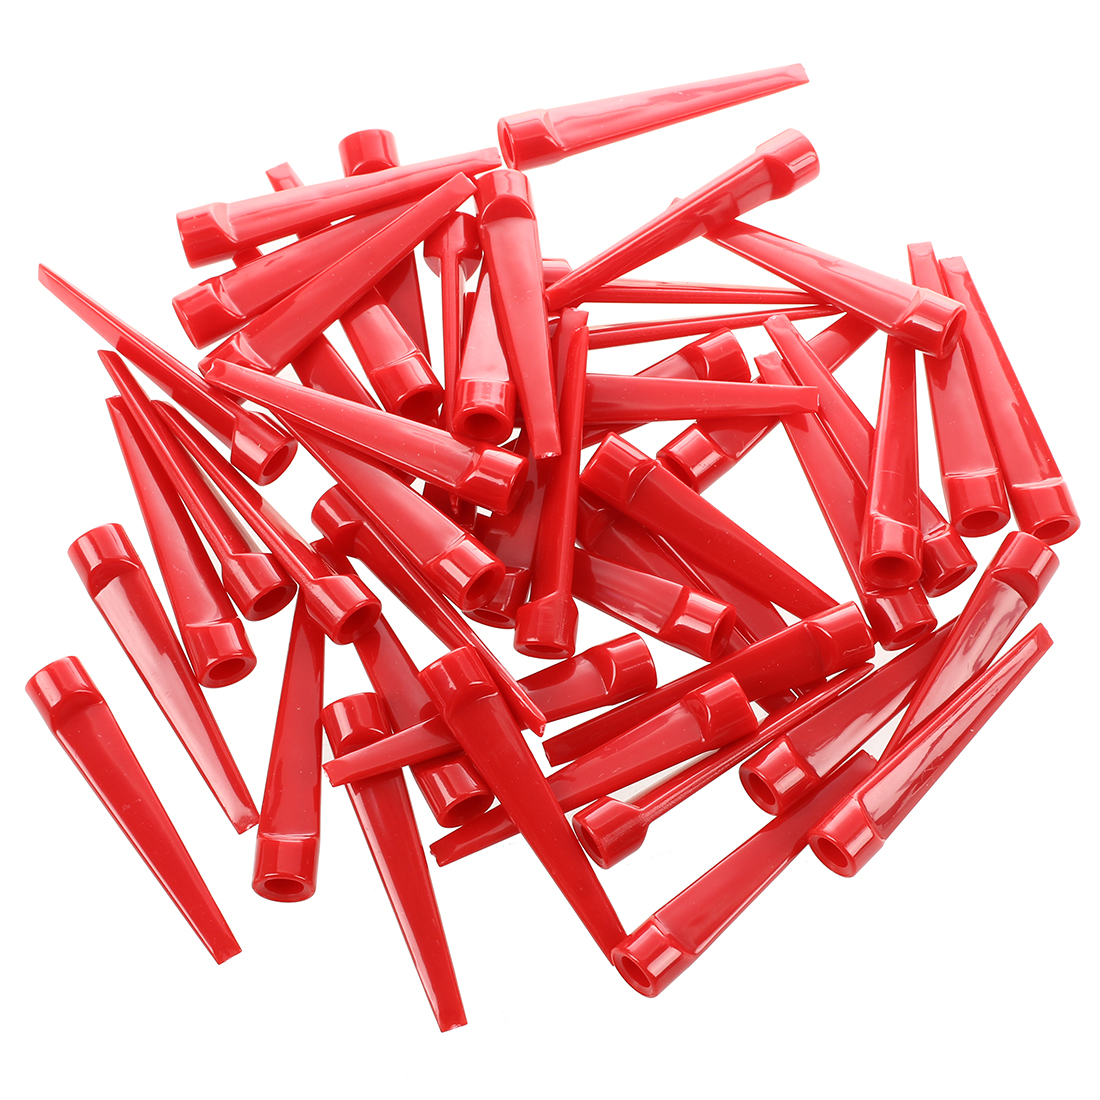 50pcs Plastic Golf Tee Tees